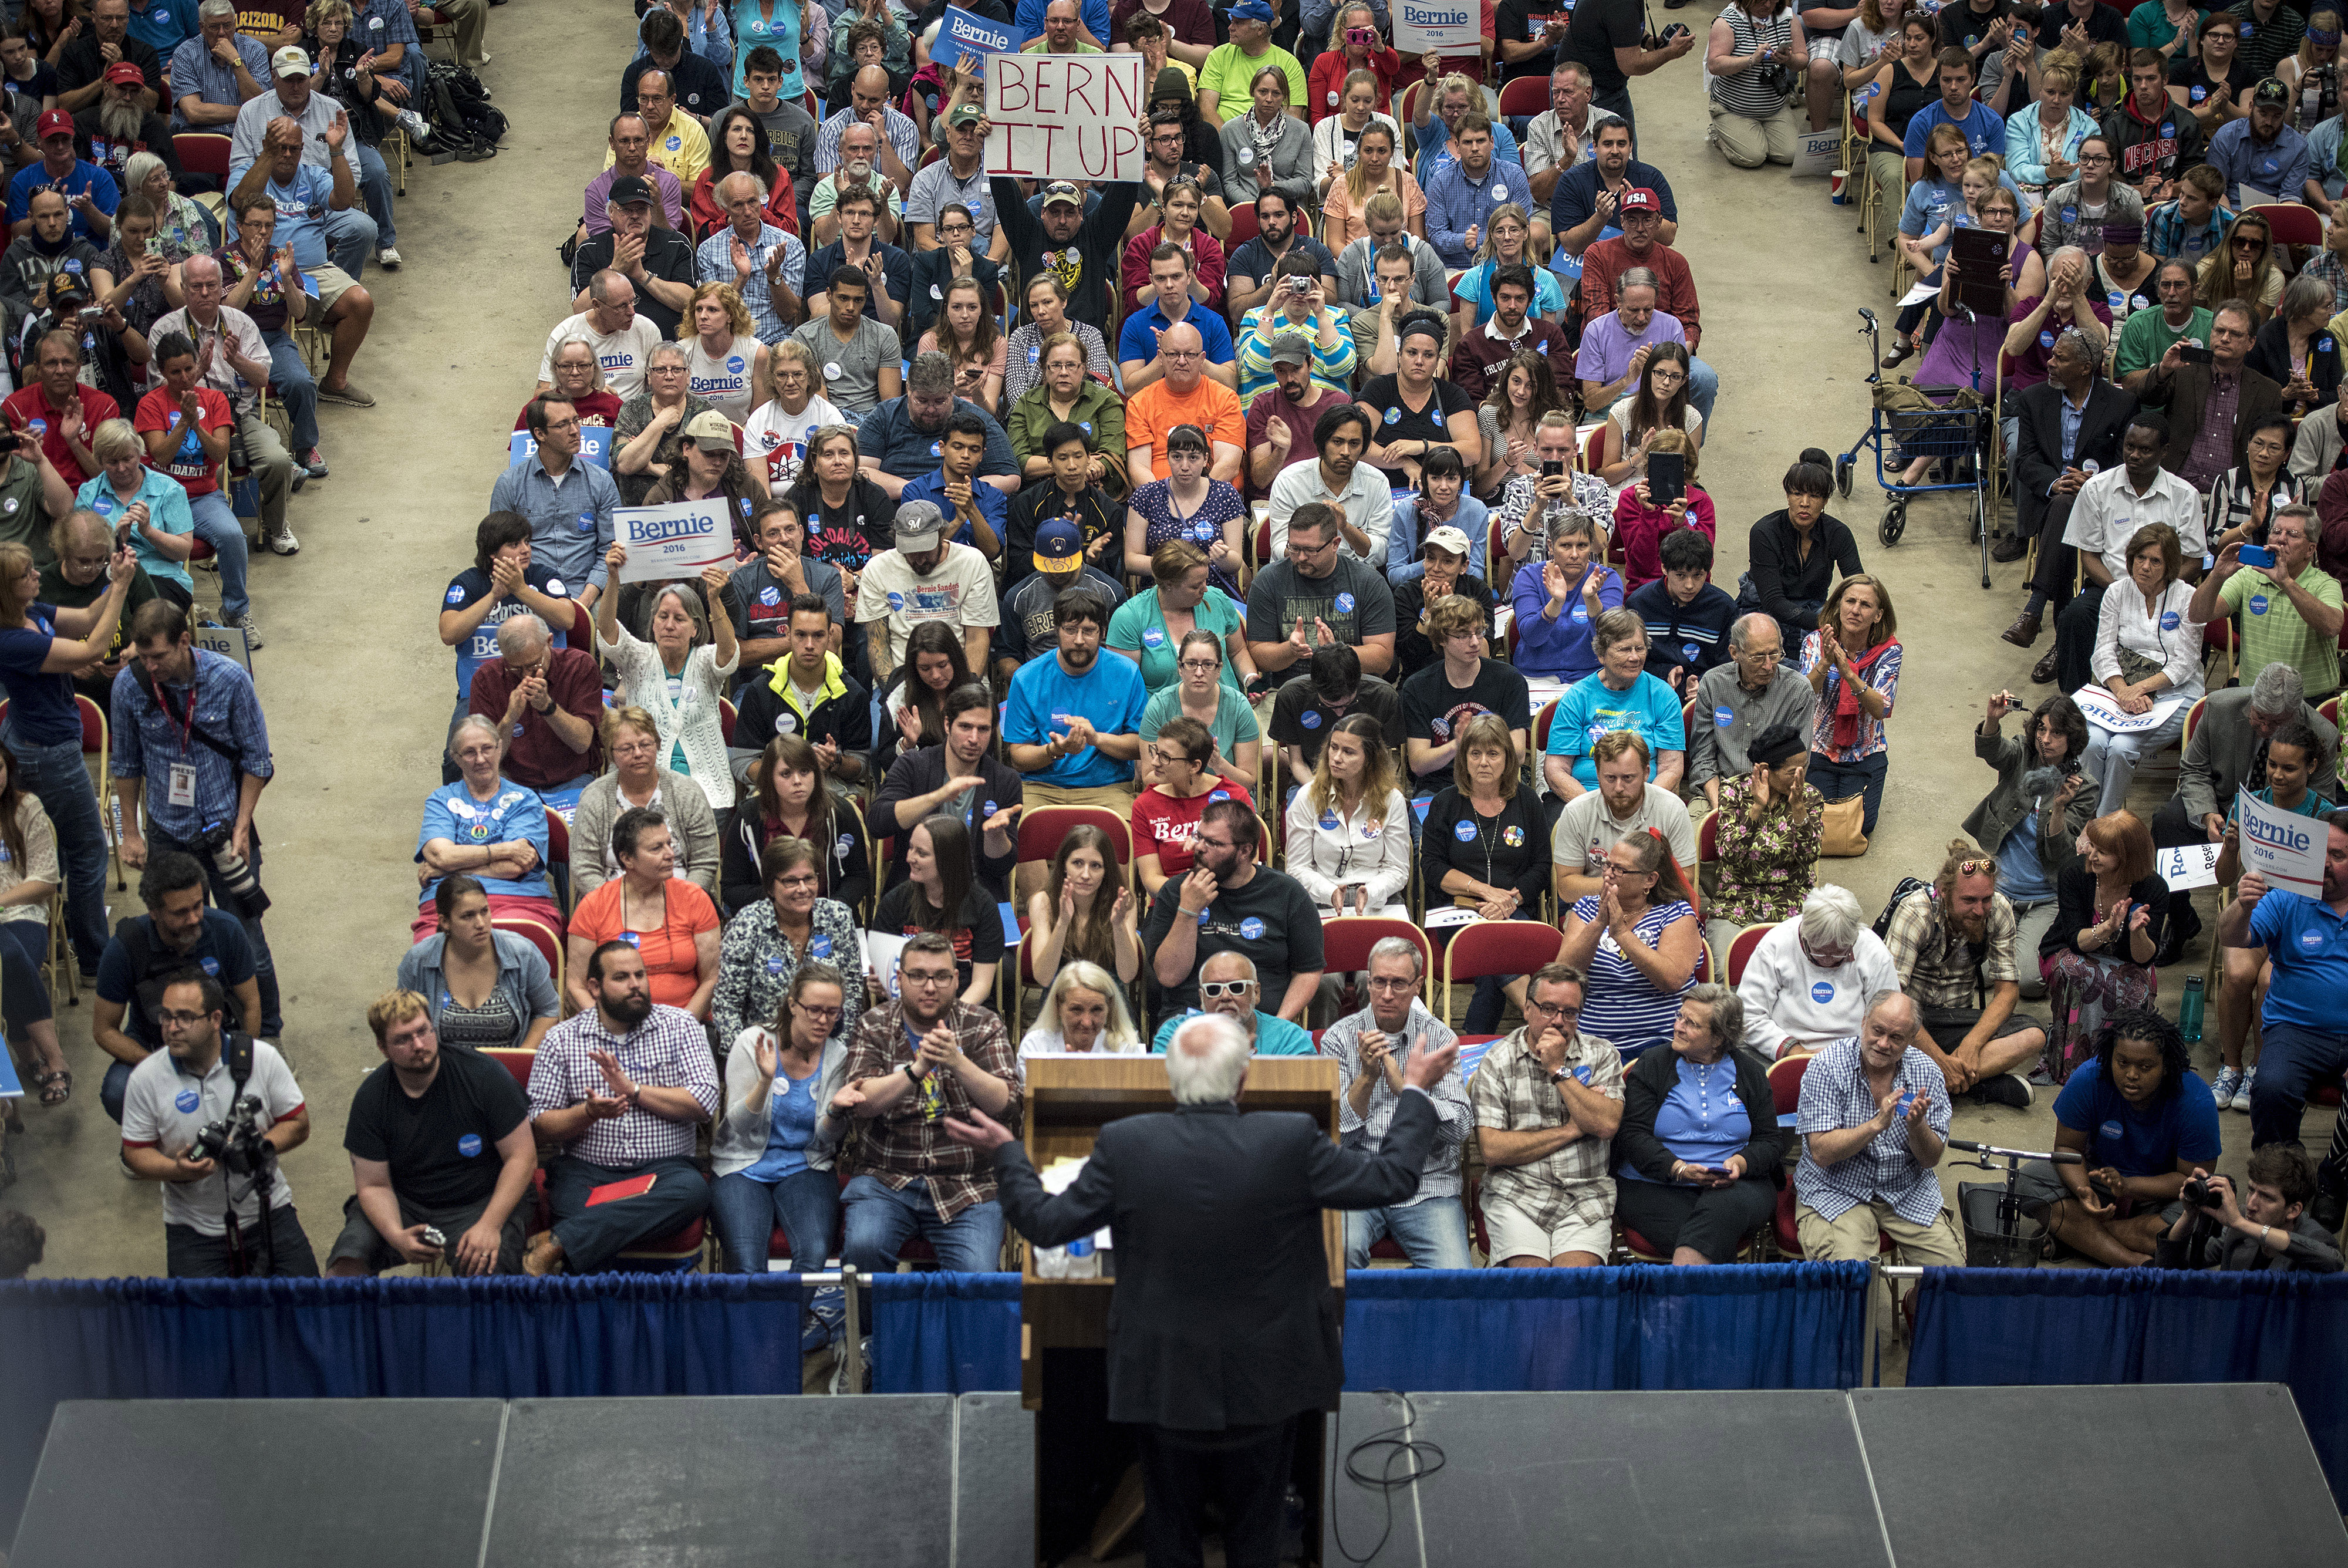 U.S. Senator Bernie Sanders, an Independent from Vermont and 2016 U.S. presidential candidate, speaks during a campaign rally in Madison, Wisconsin, U.S., on Wednesday, July 1, 2015.